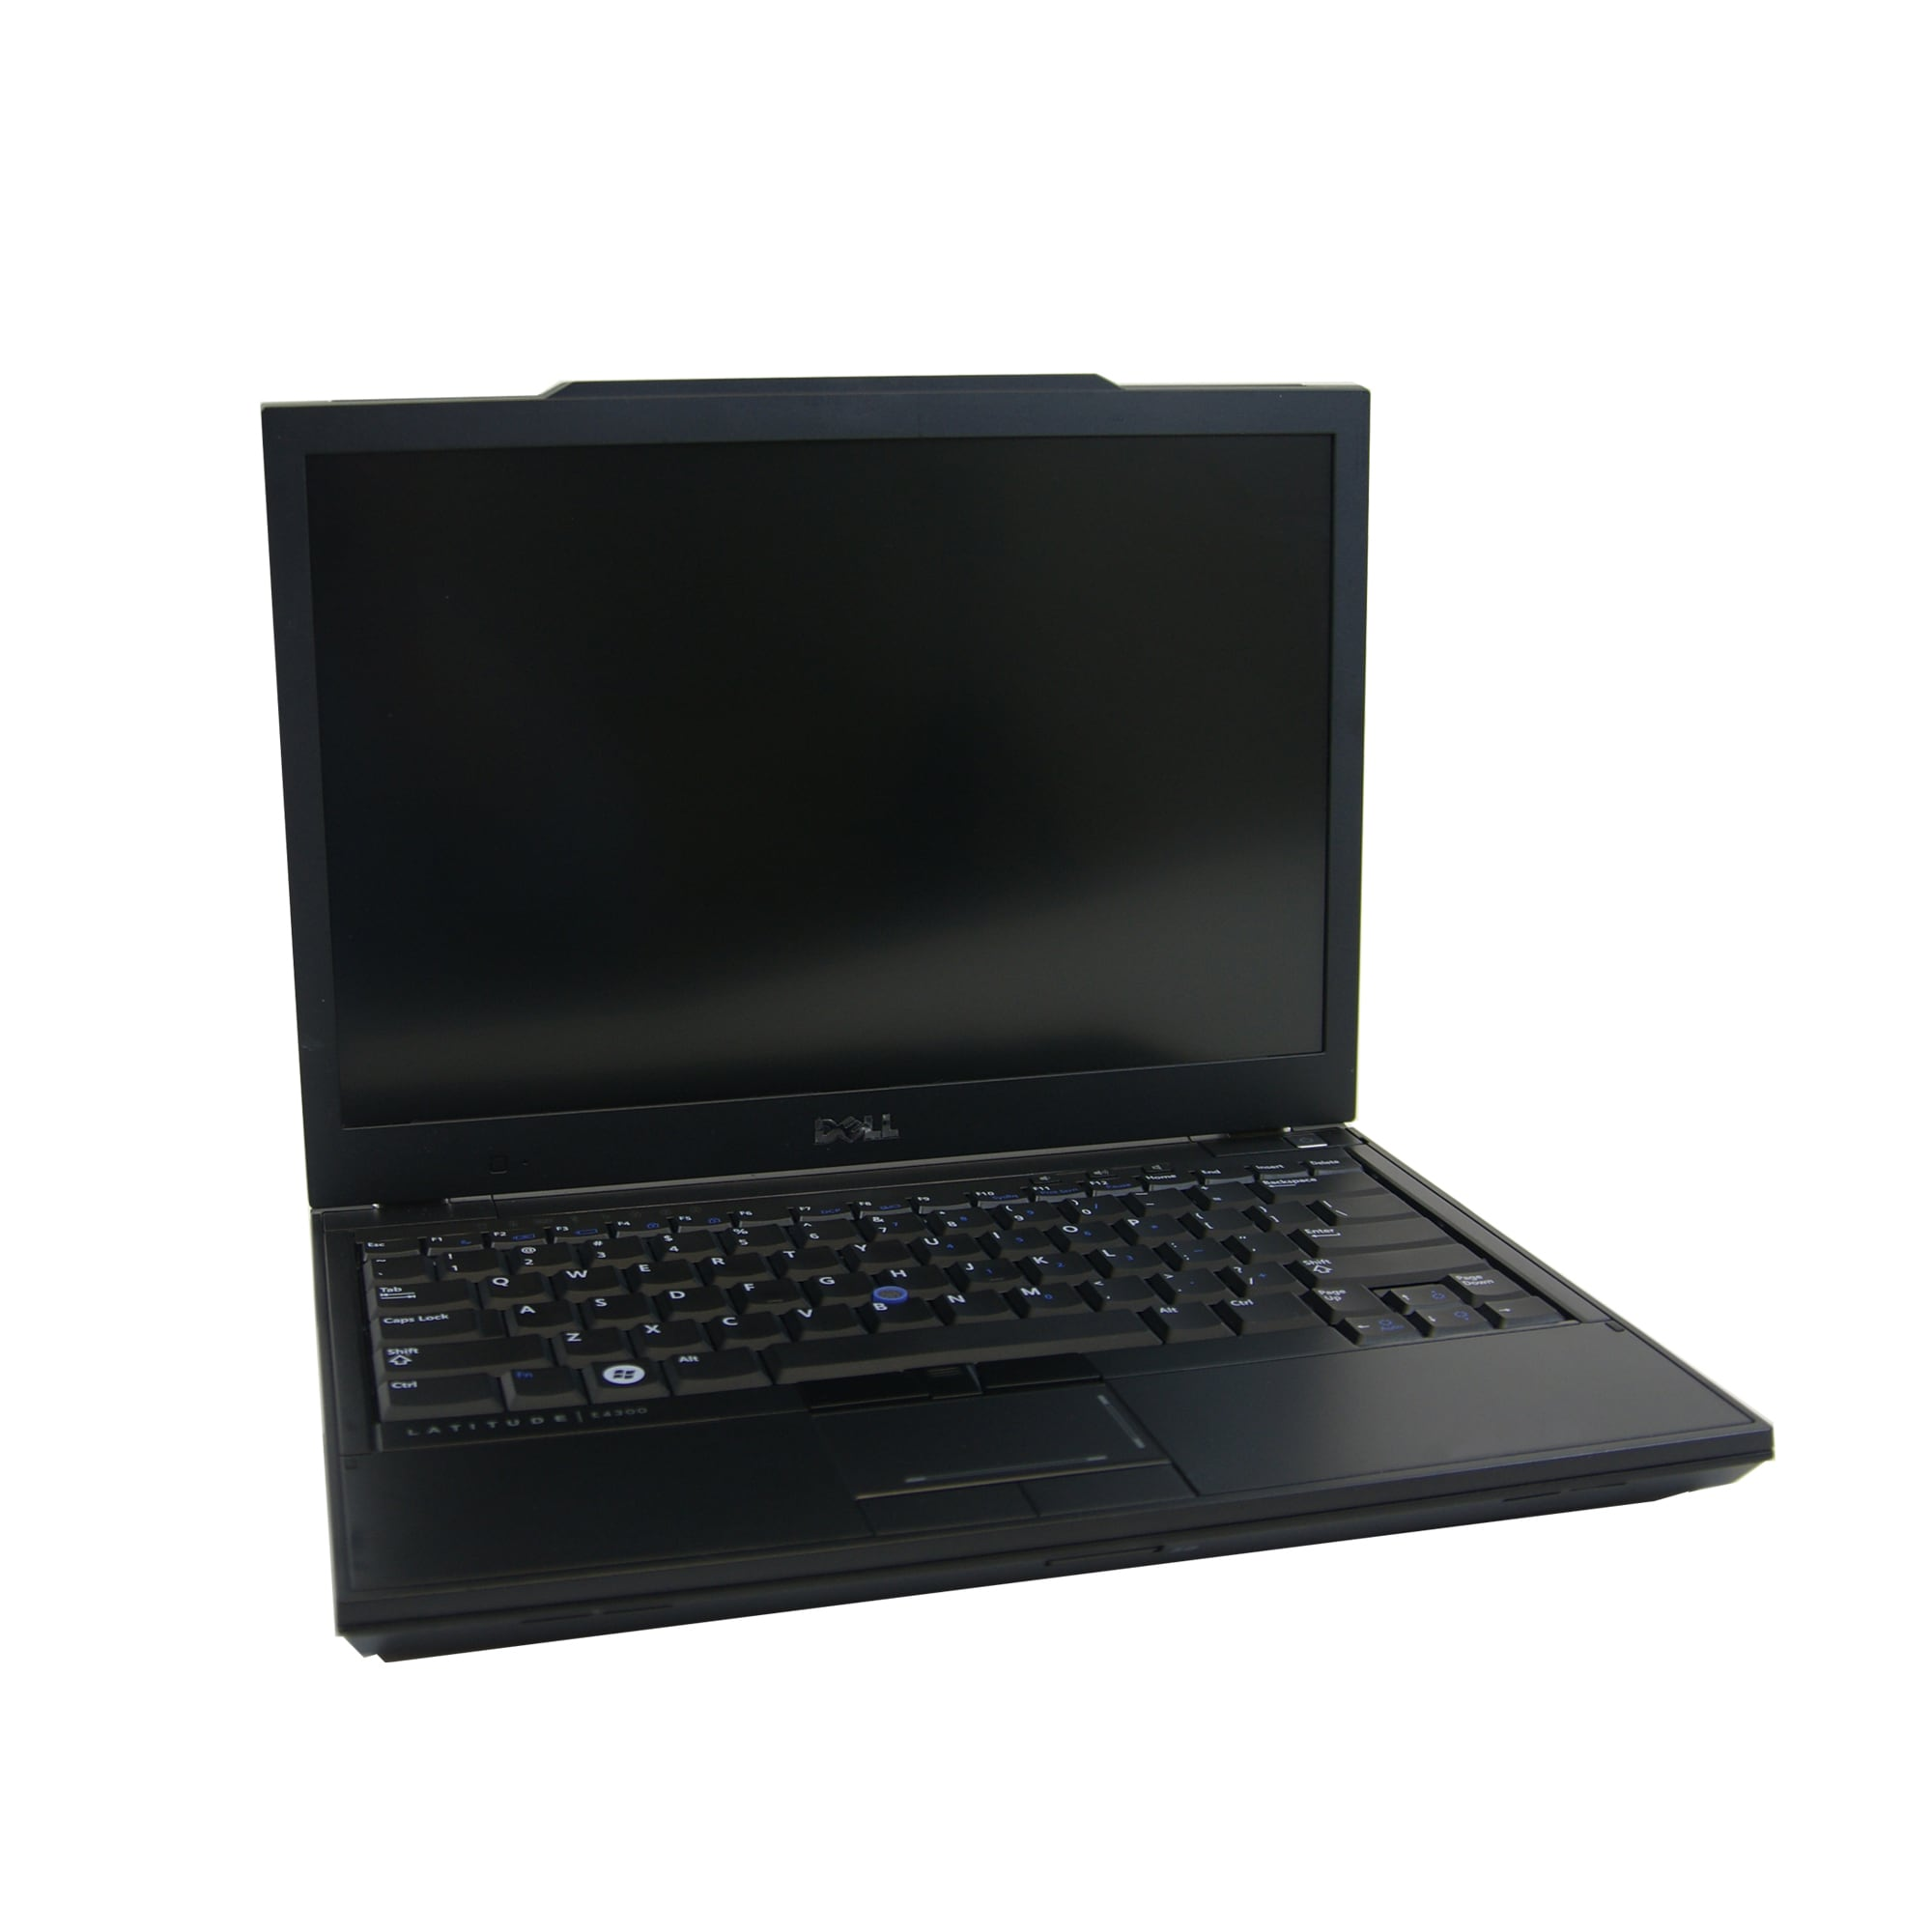 LATITUDE E4300 CONTACTED SMARTCARD WINDOWS 8 X64 TREIBER